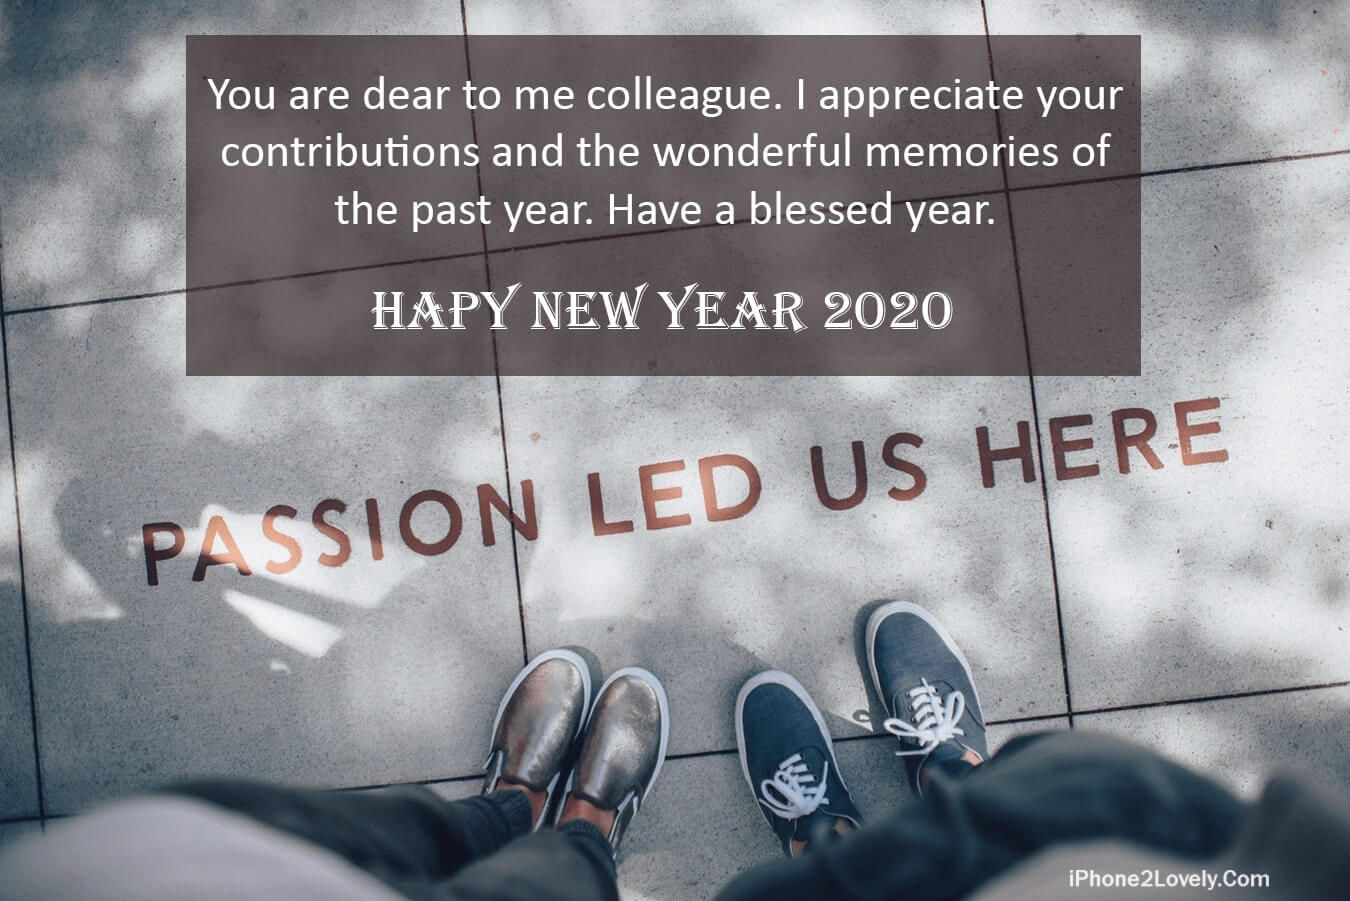 35 Happy New Year 2021 Wishes For Boss And Colleagues With Images Happy New Year Wishes New Year 2020 Colleagues Quotes